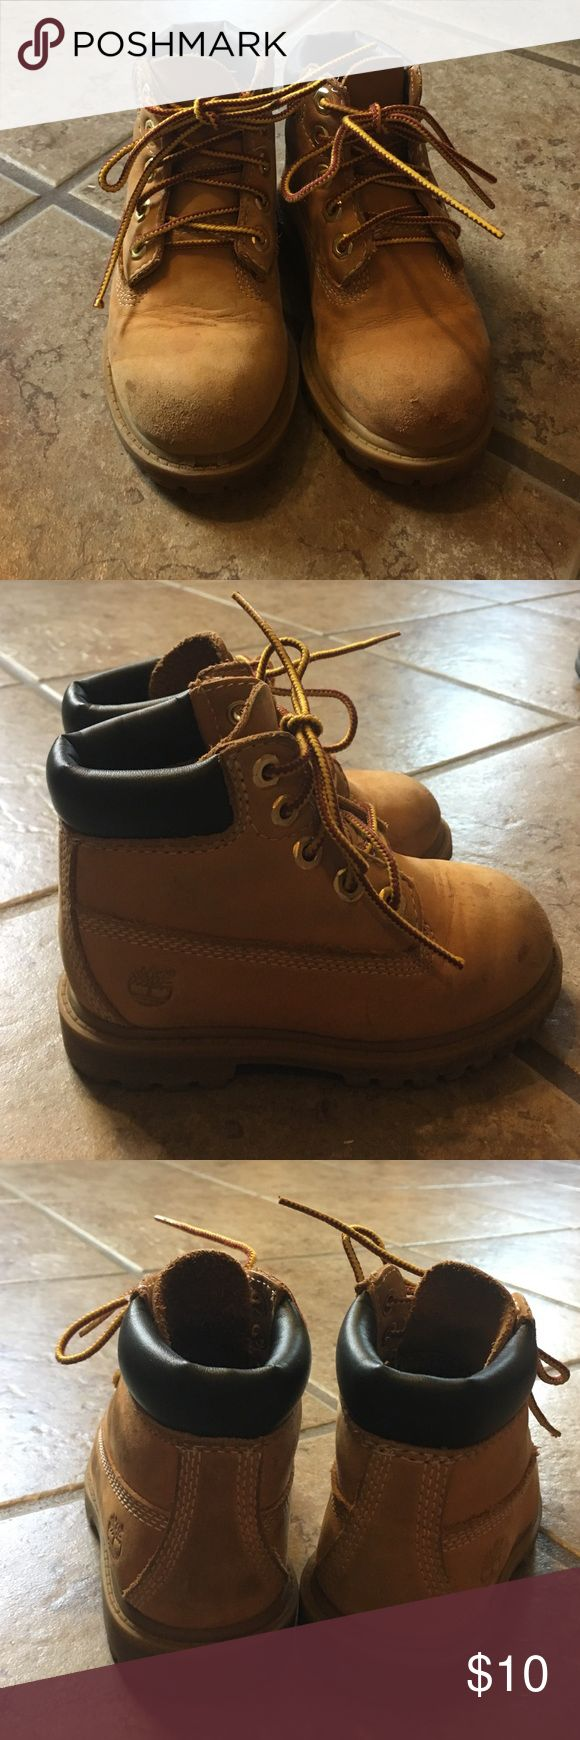 Toddler Timberland boots *price reflects condition. Boots used but still have a lot of life yo them. They are worn, and have scuffing on the toes. No holes. Boots are extremely durable and great quality. Timberland Shoes Boots